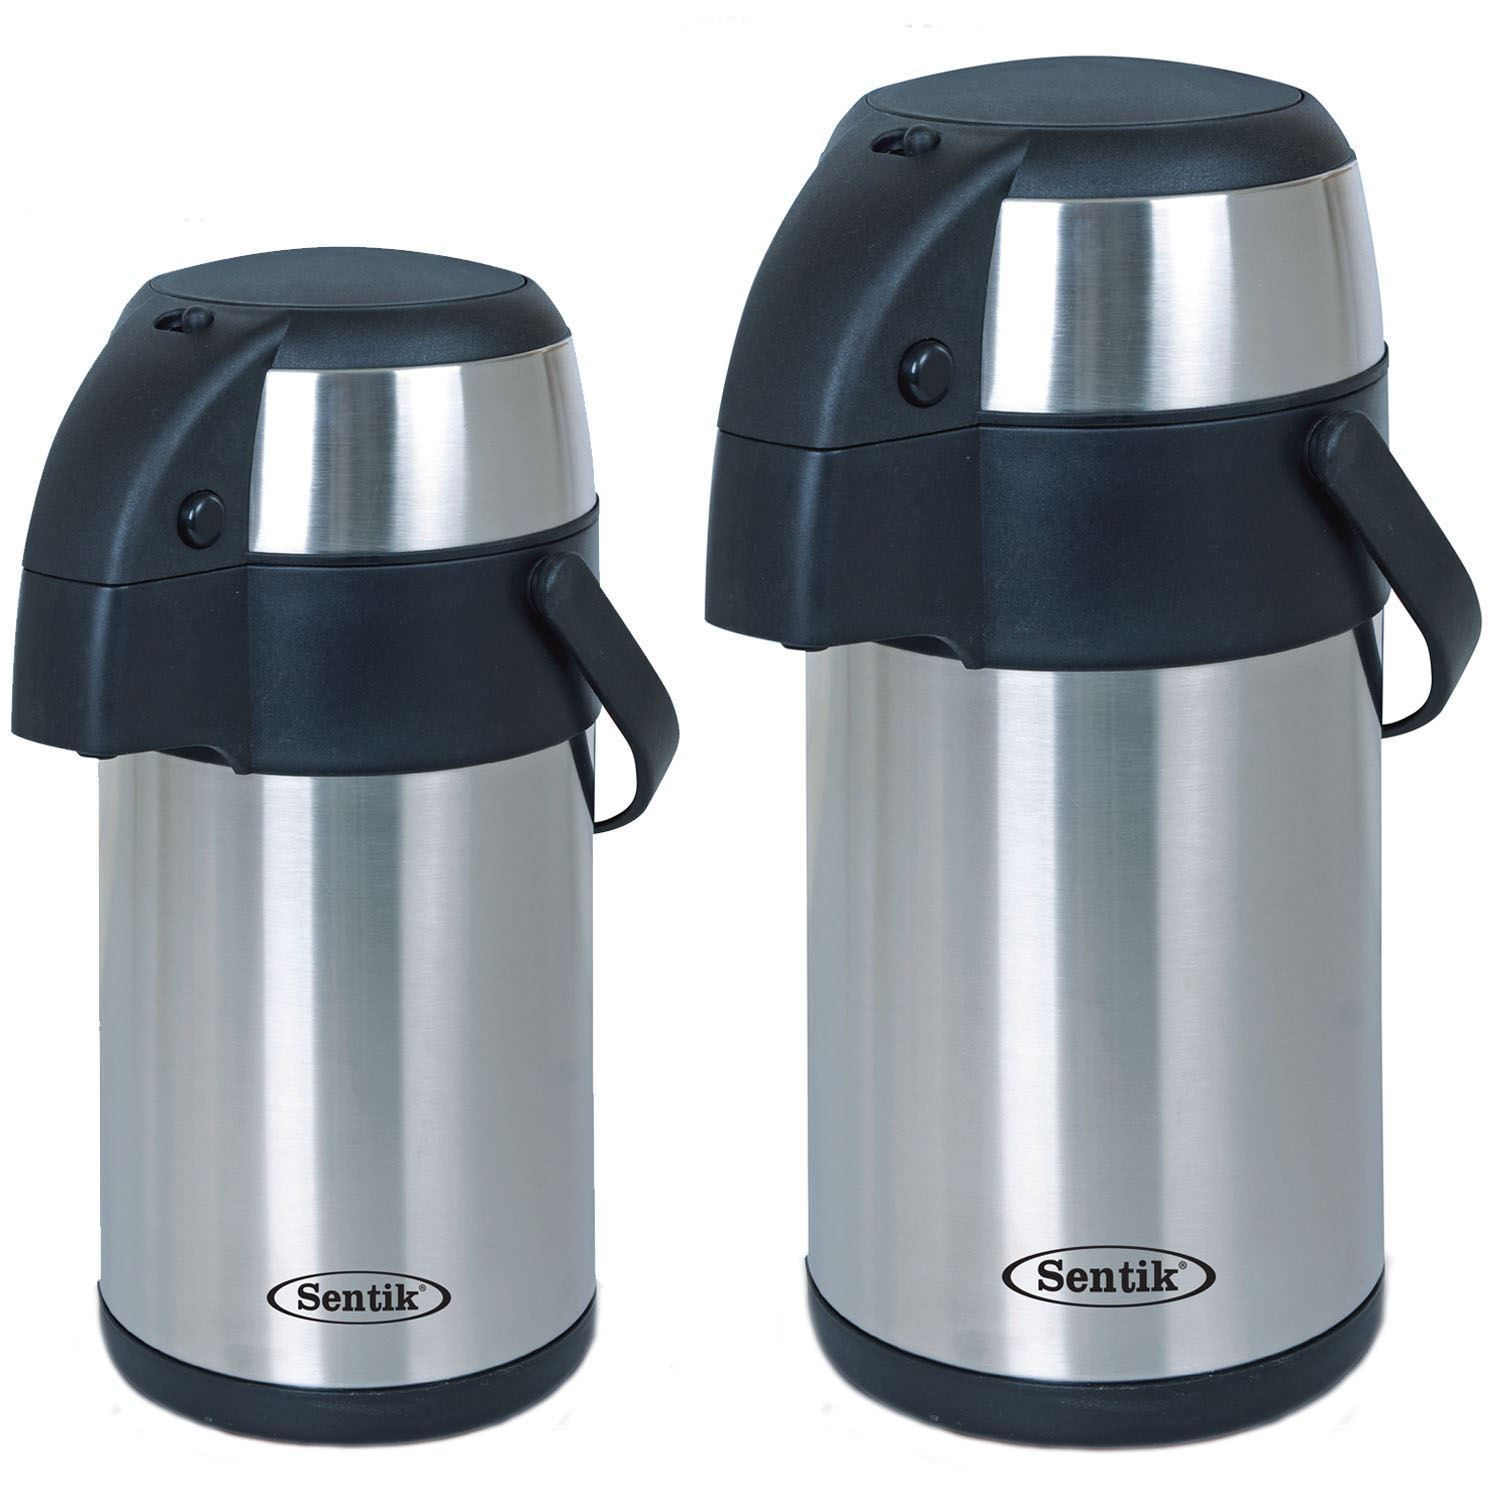 3l 5l litre stainless steel airpot vacuum flask thermos jug with pump action ebay. Black Bedroom Furniture Sets. Home Design Ideas